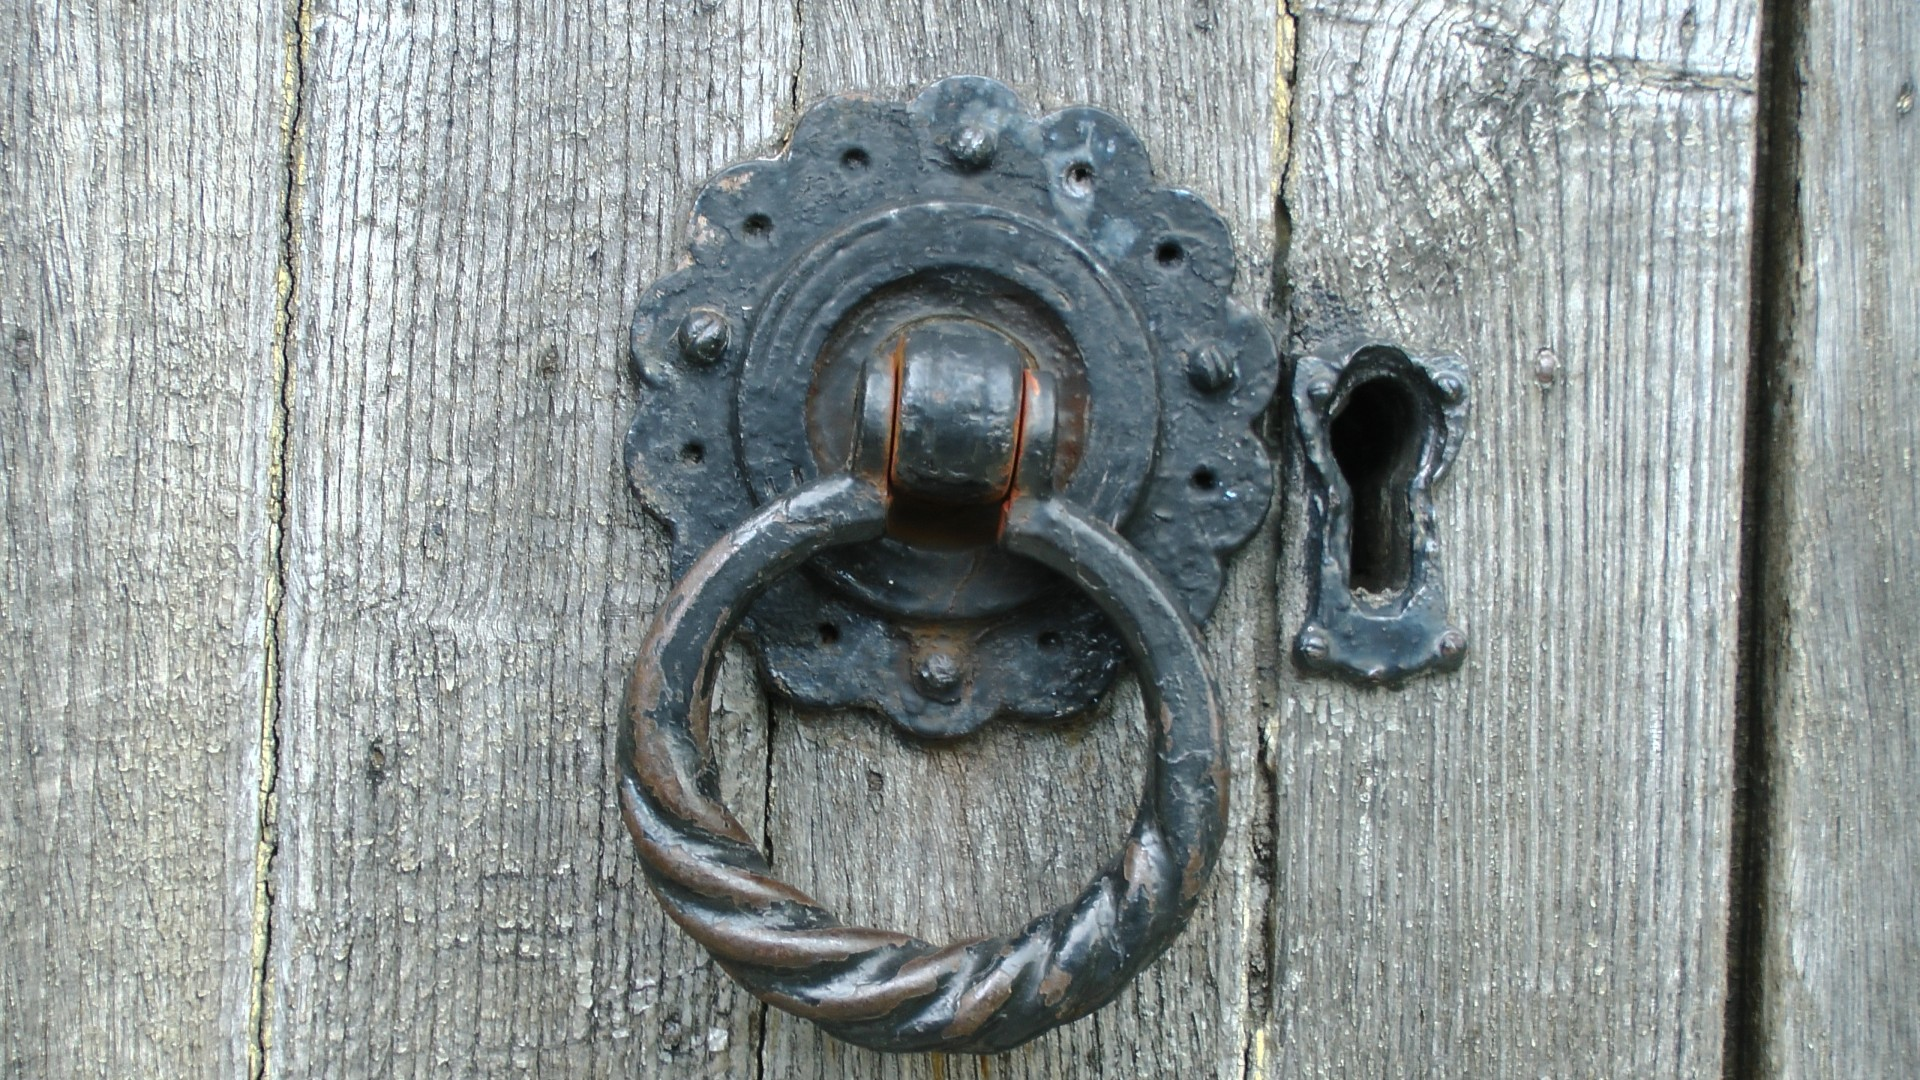 Le Meilleur Old Wooden Door Handle Free Stock Photo Public Domain Ce Mois Ci